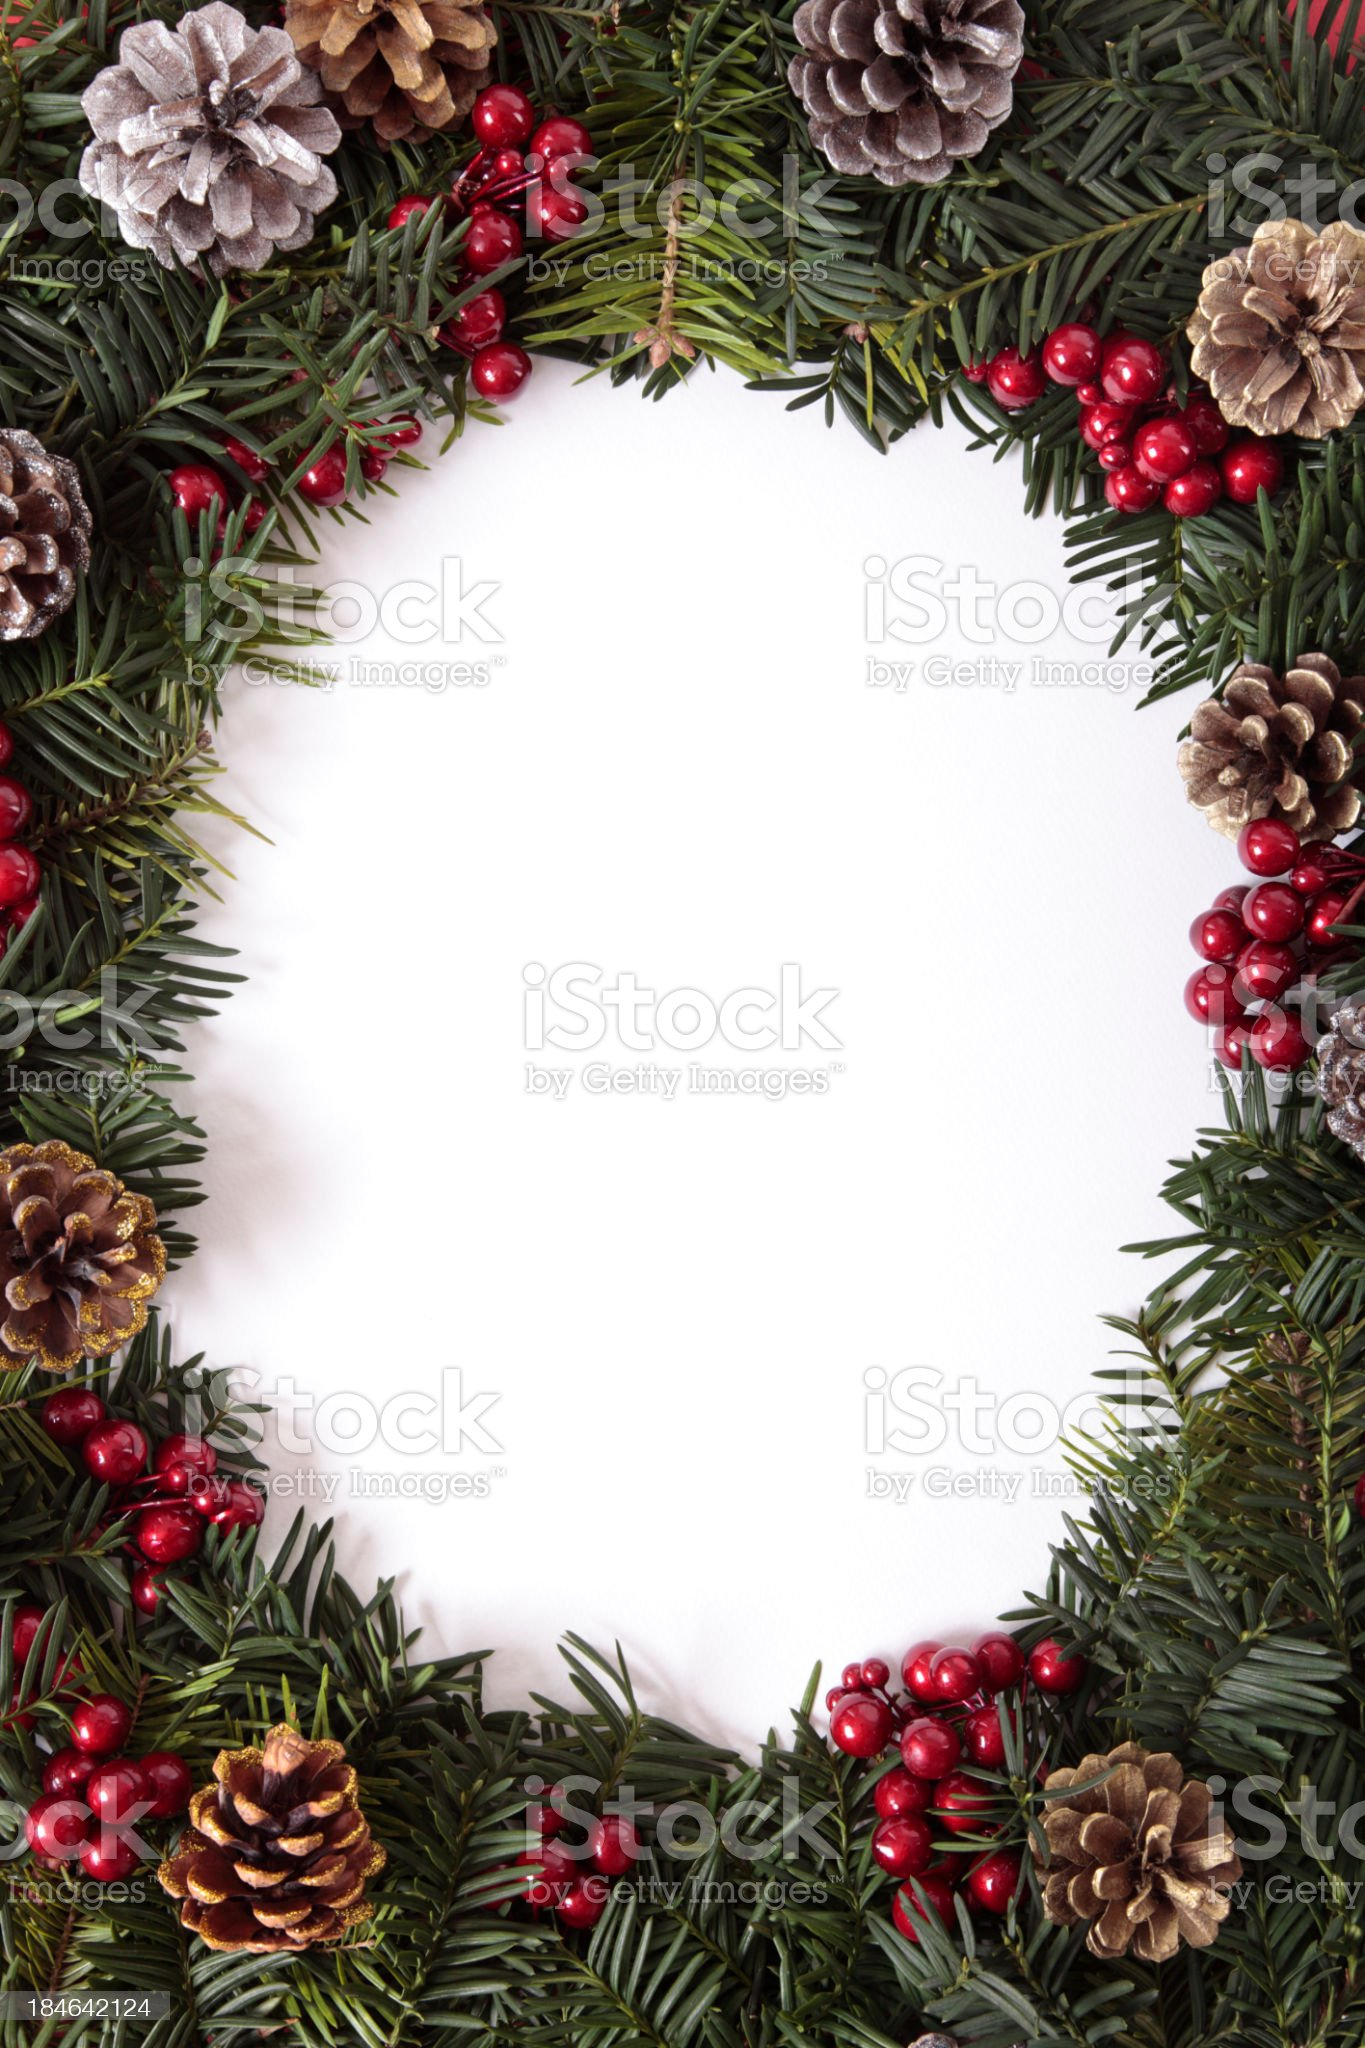 Christmas border wreath with pinecones and cranberries royalty-free stock photo